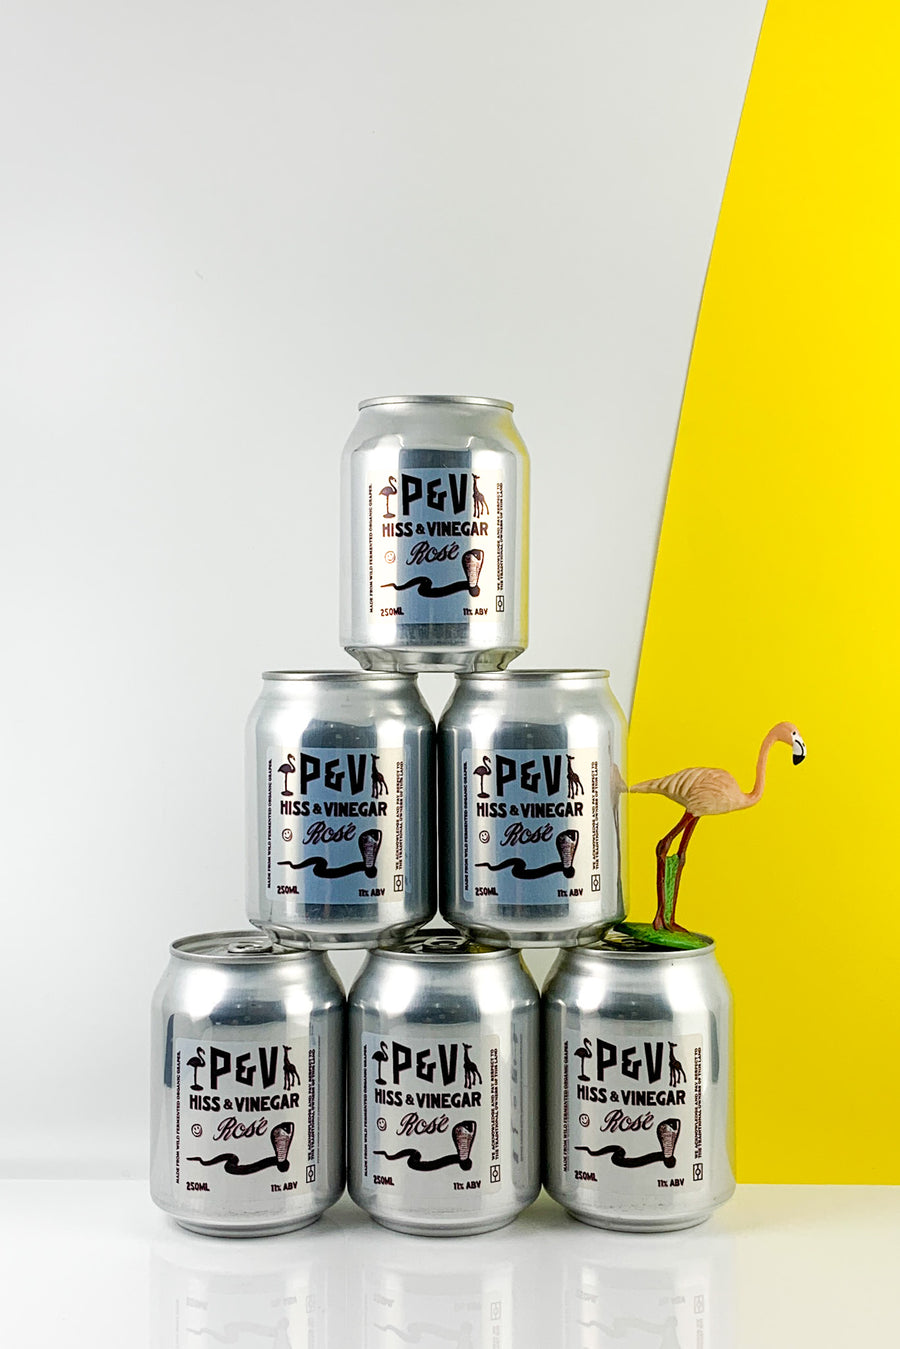 P&V's Hiss & Vinegar Rose in a Can